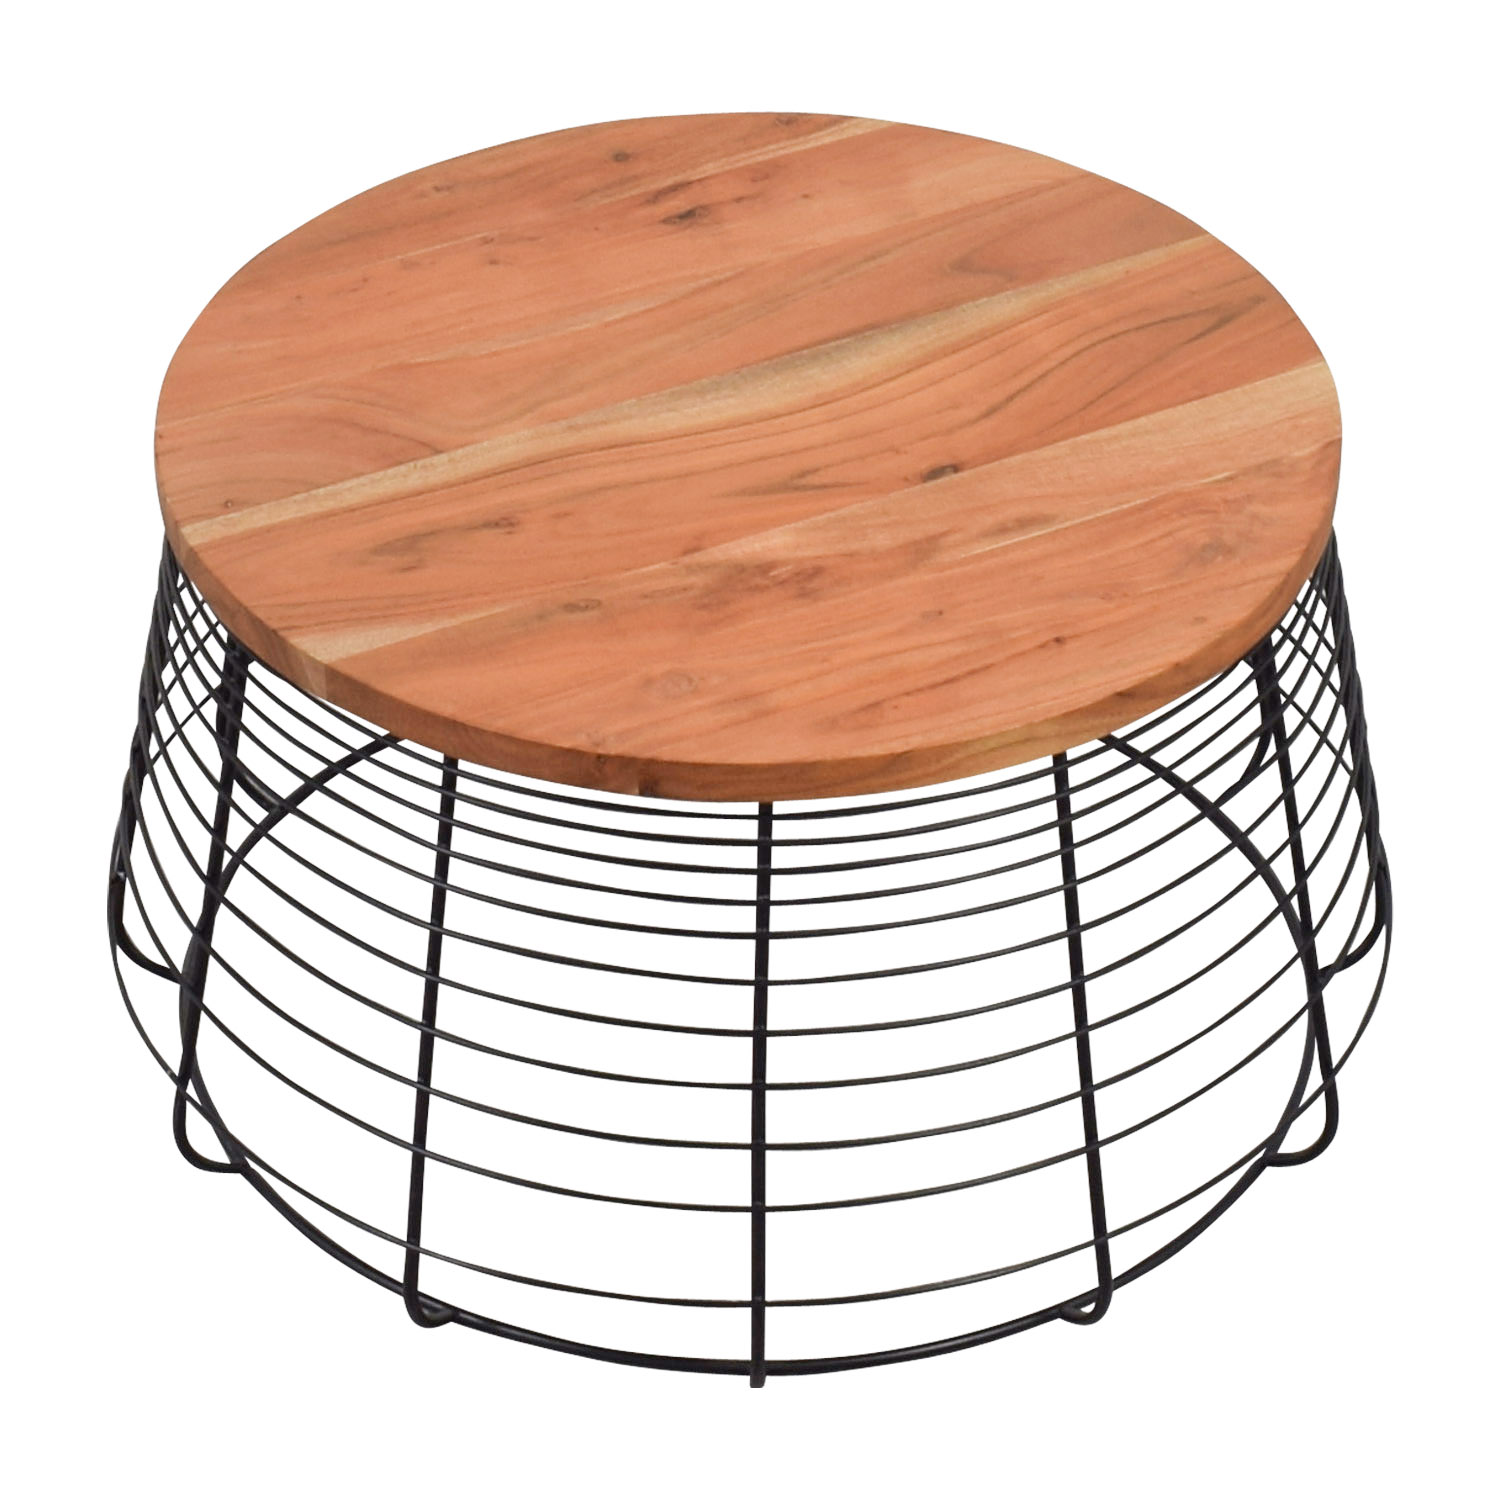 CB2 CB2 Apis Round Coffee Table discount